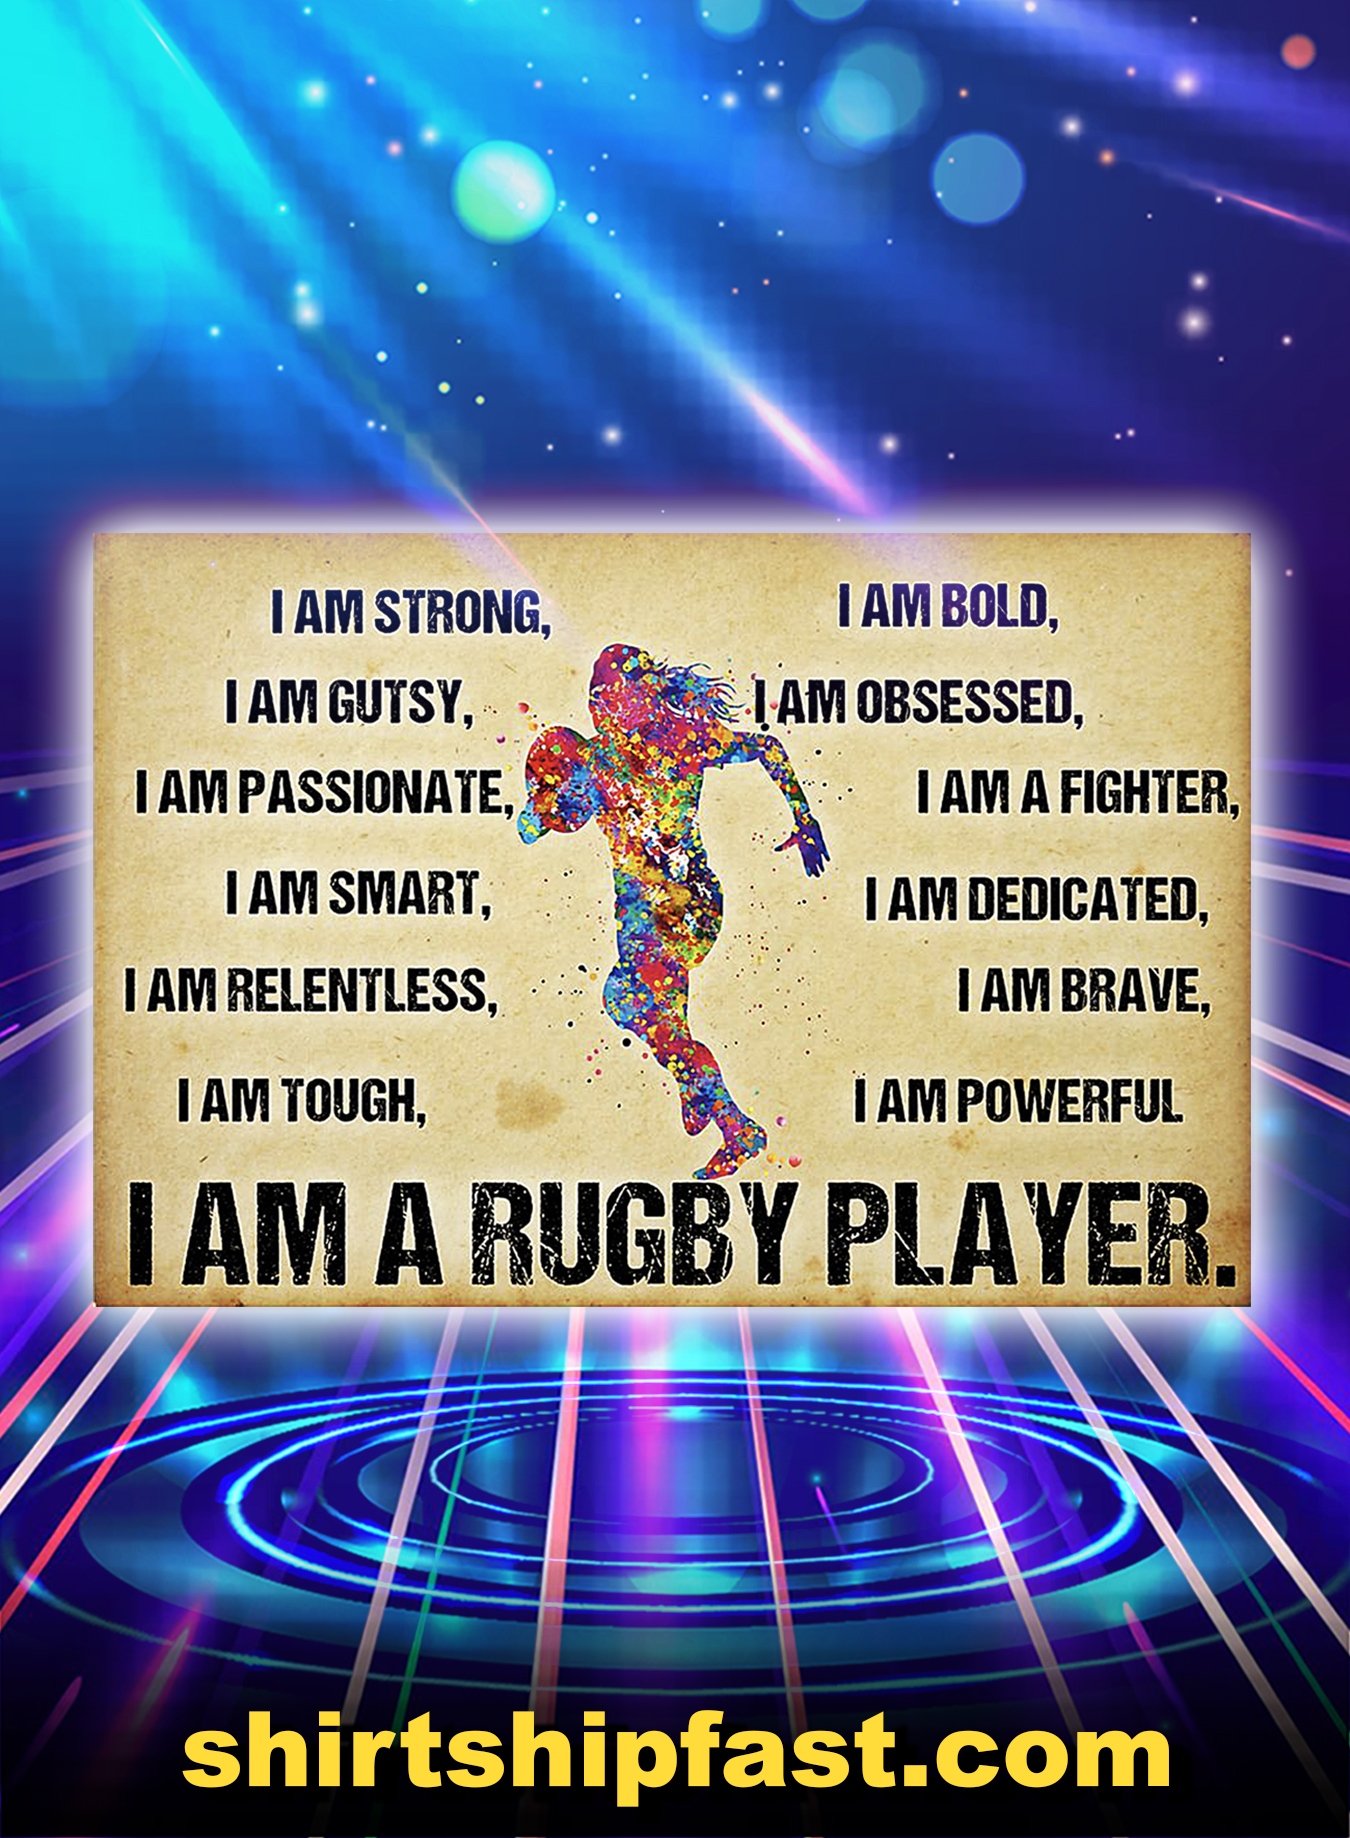 I am a rugby player poster - A3